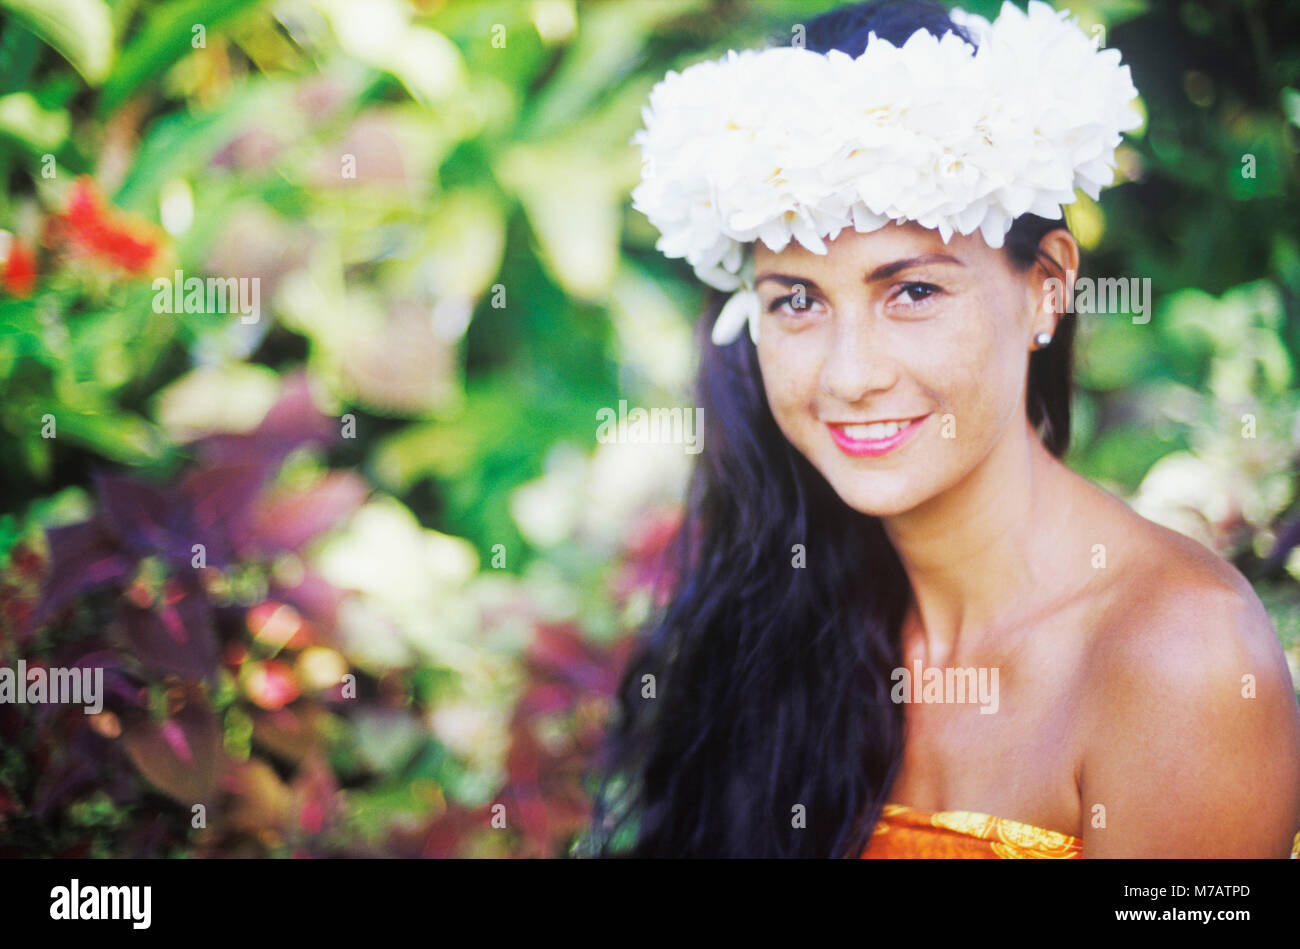 Portrait of a young woman smiling, Hawaii, USA - Stock Image